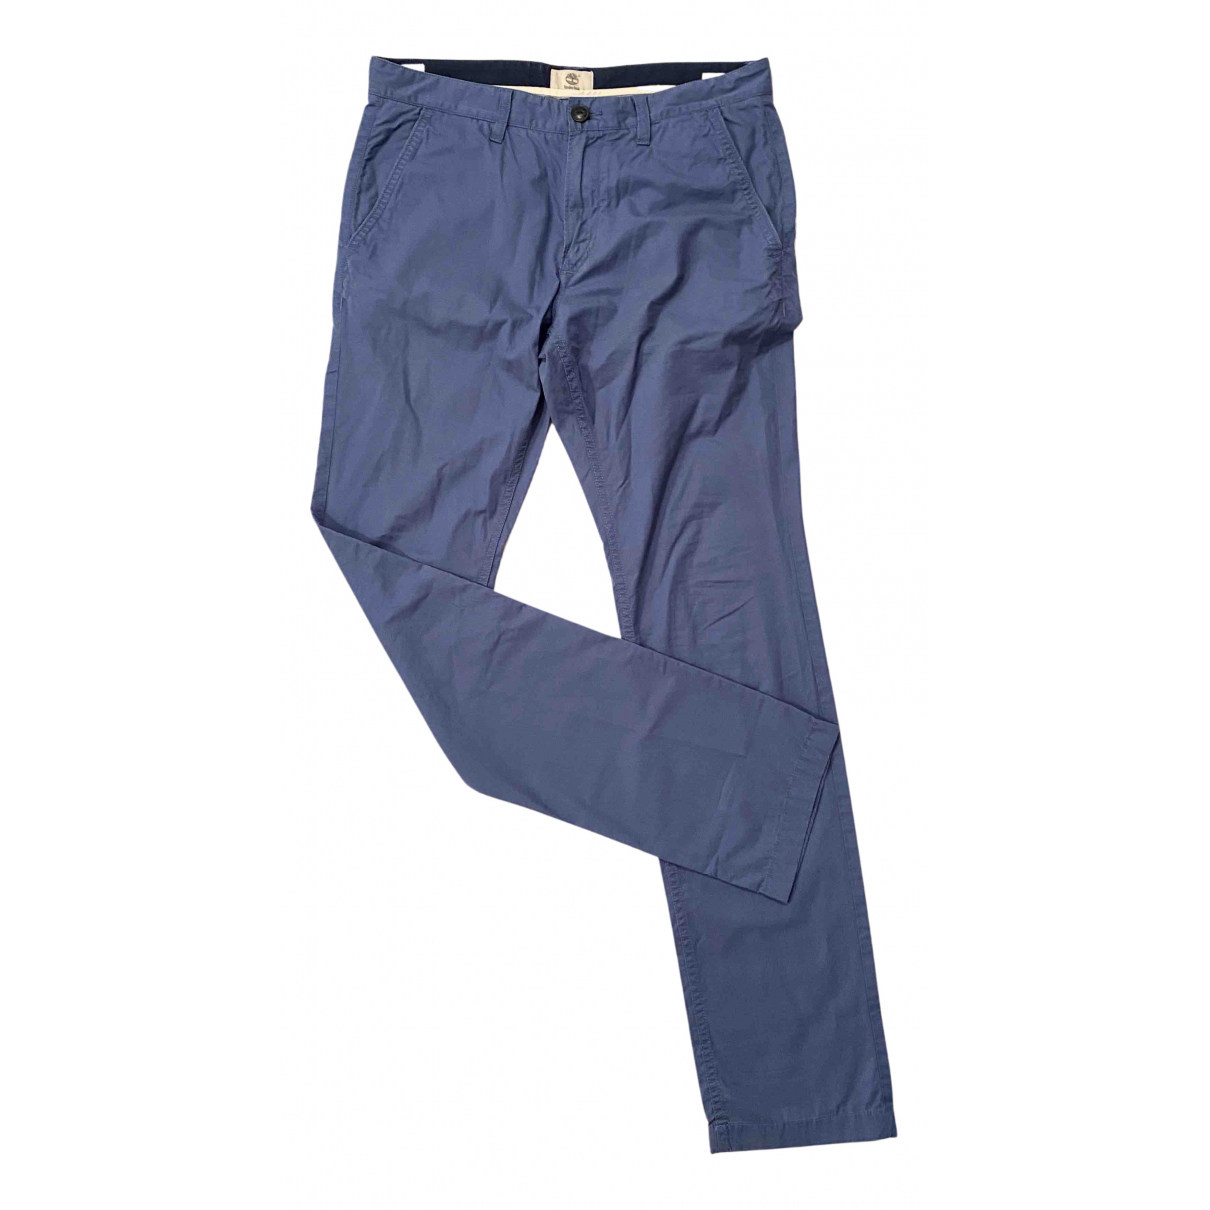 Timberland N Blue Cotton Trousers for Men 34 UK - US